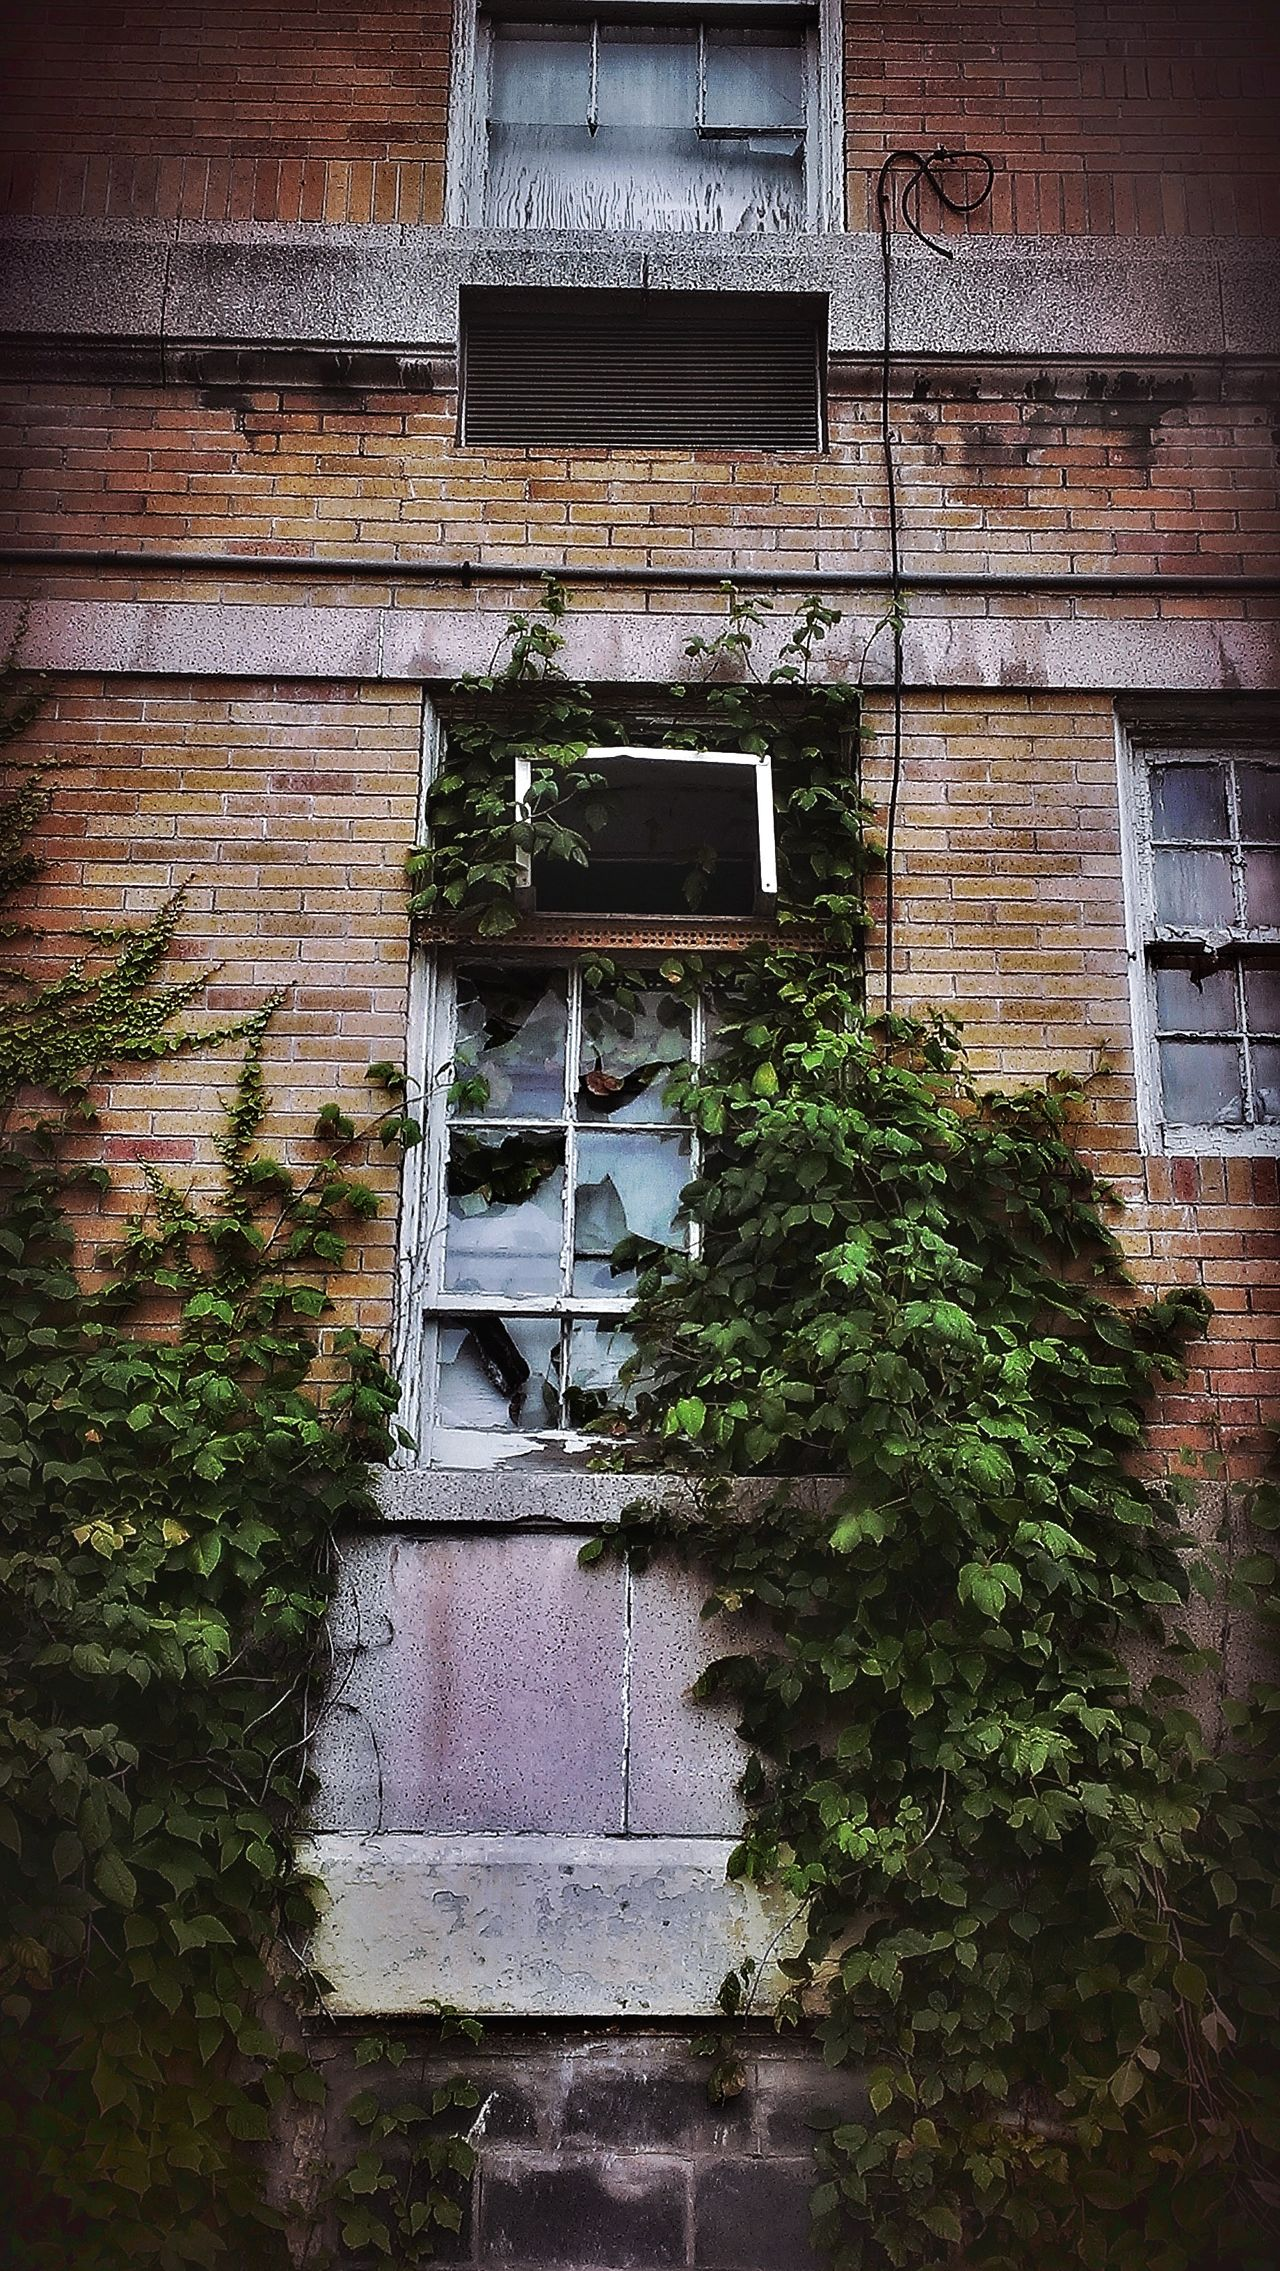 Built Structure BOB Brick Old Building Brick Building Abandoned Buildings Damaged Urbexphotography AMPt - Abandon Abandoned & Derelict AMPt - Street EyeEm Gallery Abandoned Places Creepy Building Windows Ivy Covered Wall Ivy Wall Nature Takes It Back Nature Taking Over Broken Window Windows Textured  Building Exterior Urban Lifestyle Abandoned AMPt - My Perspective EyeEm_abandonment